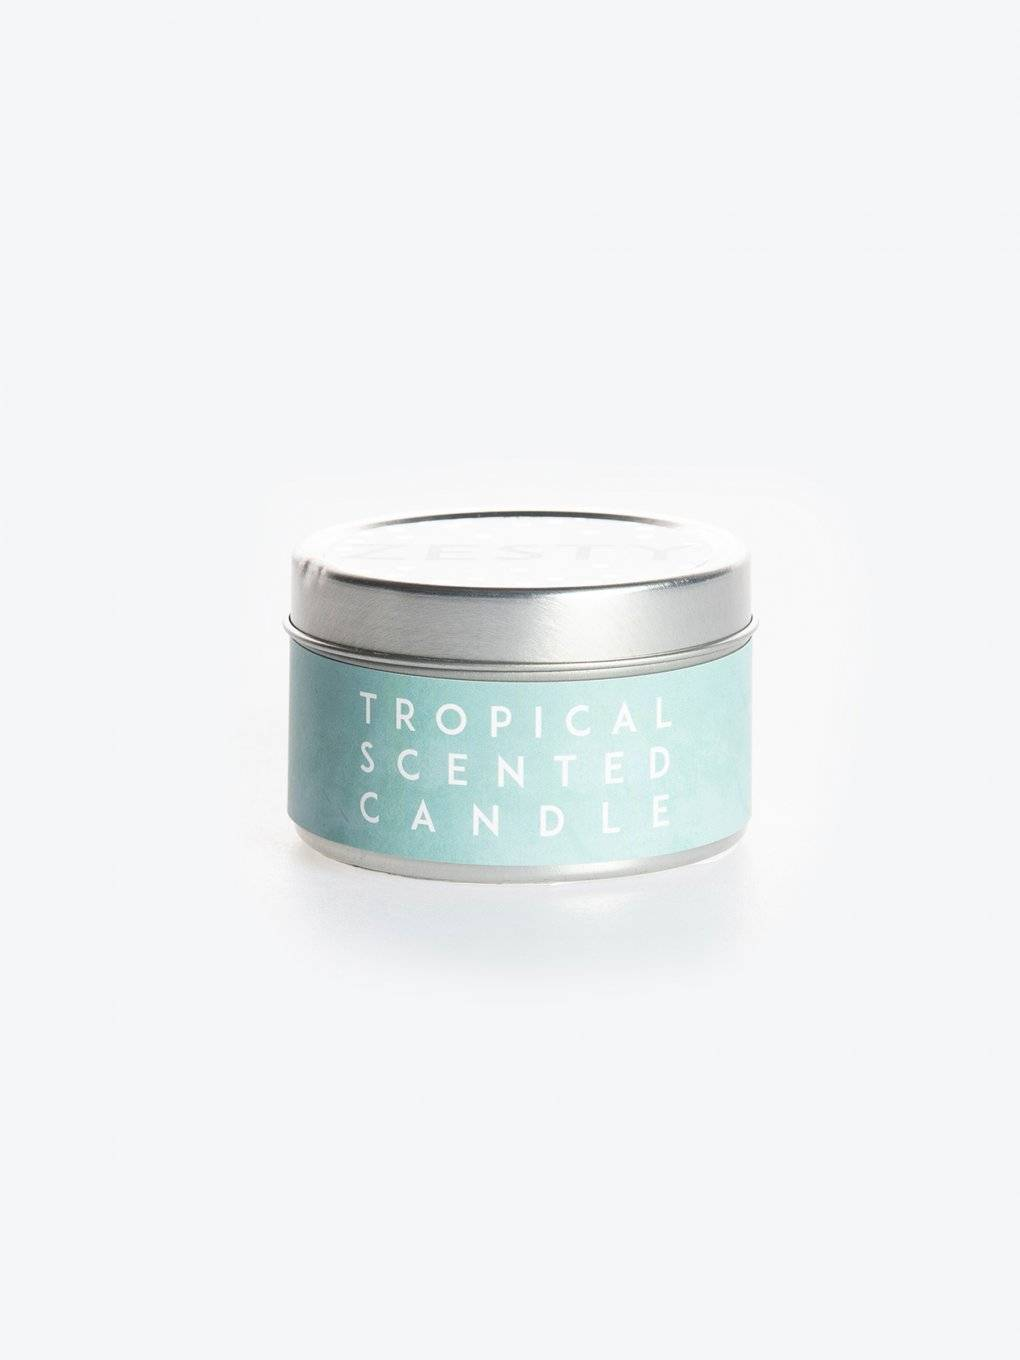 Pineapple scented candle  in a tin